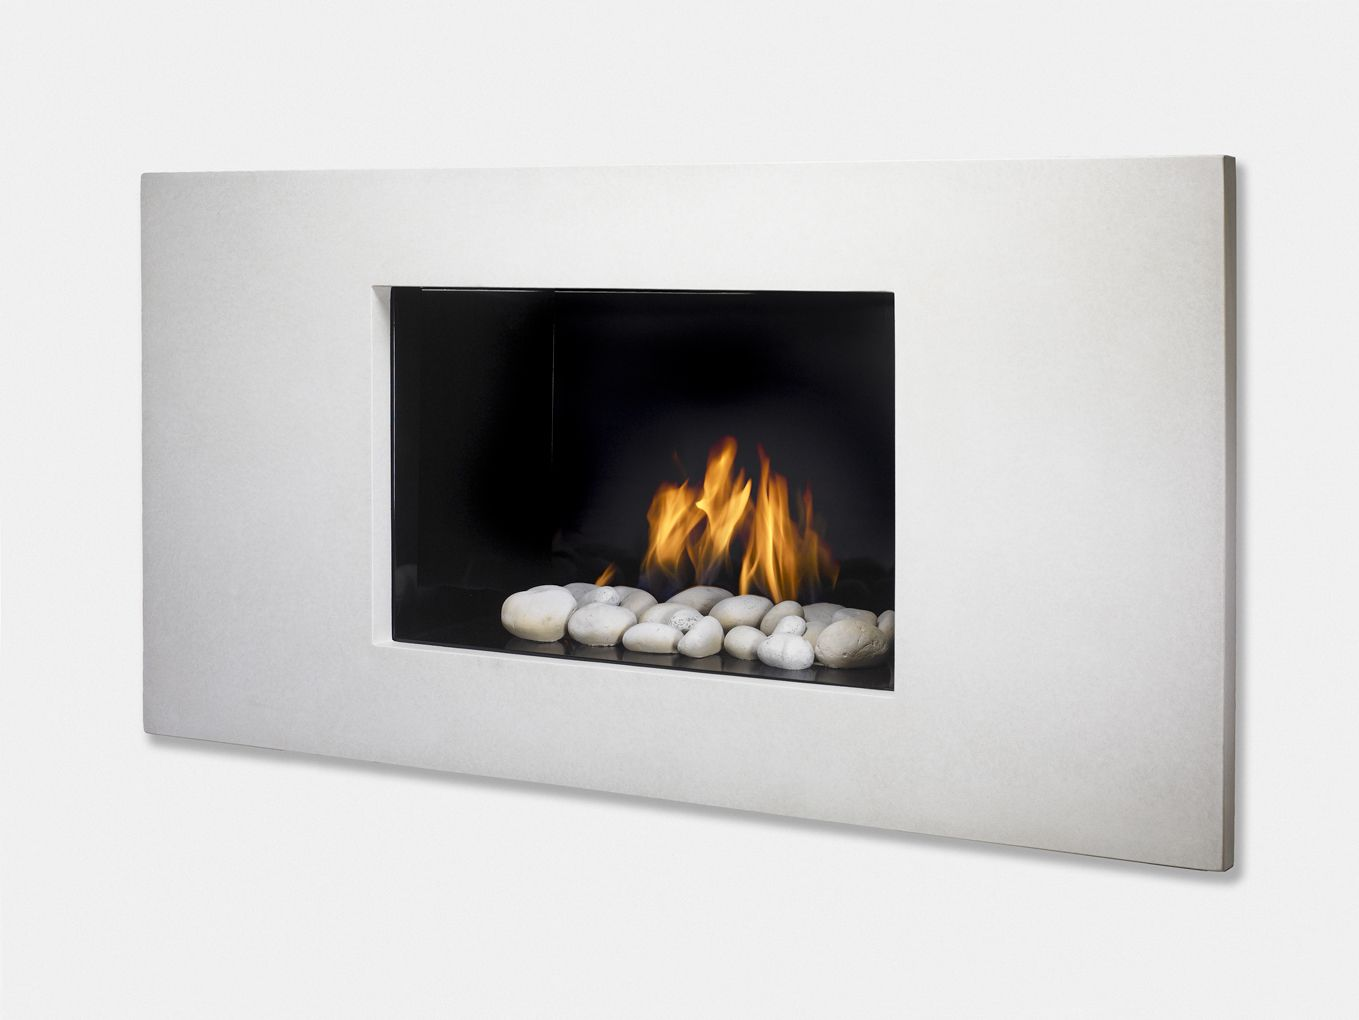 new looks u2013 fresh colors in modern gas fireplaces from european